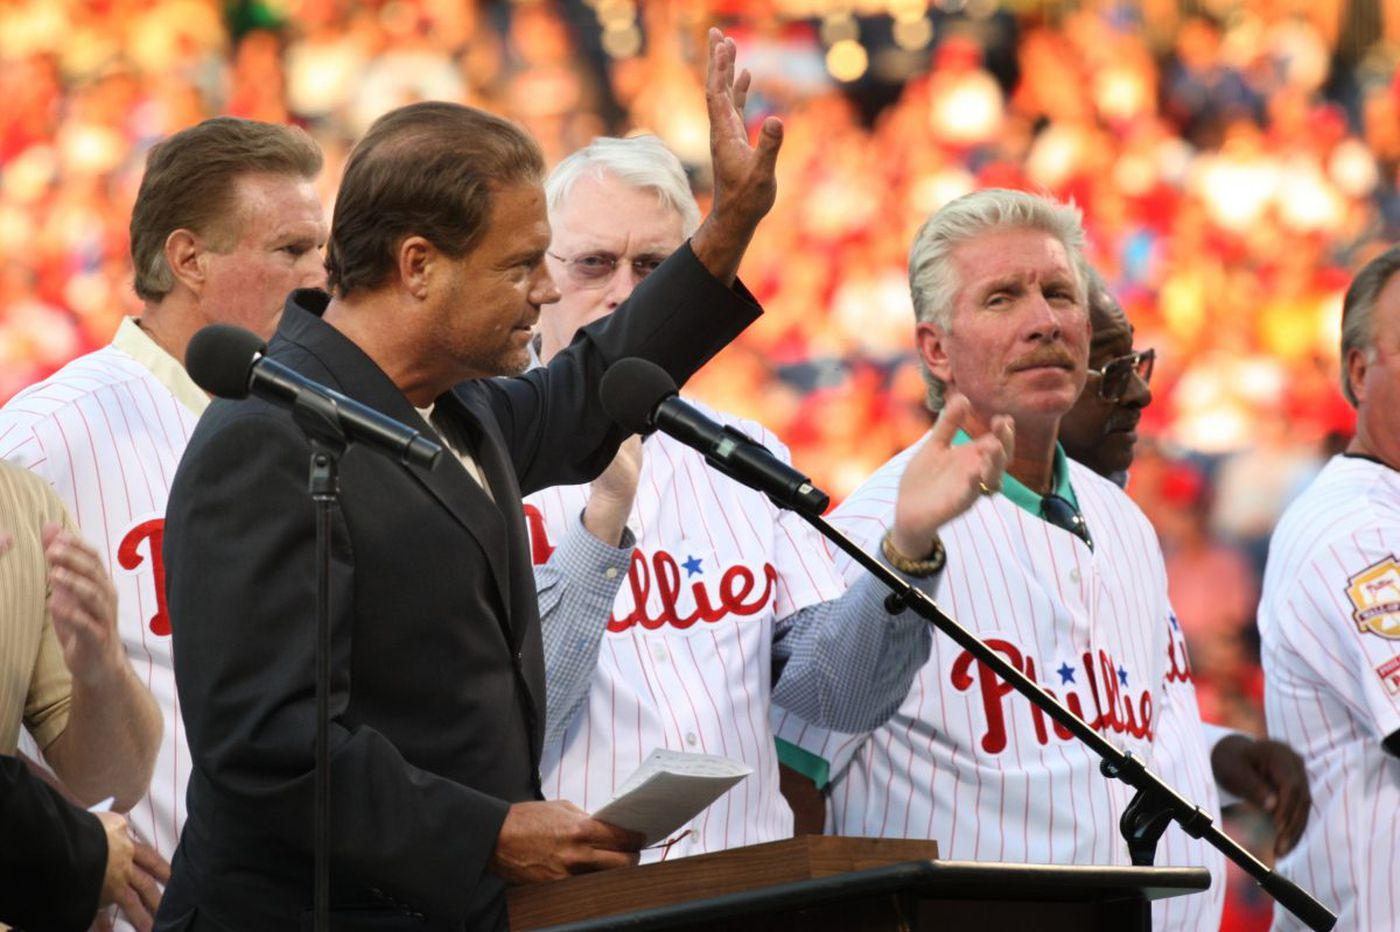 Mitch Williams remembers Darren Daulton as 'Captain of our chaos'